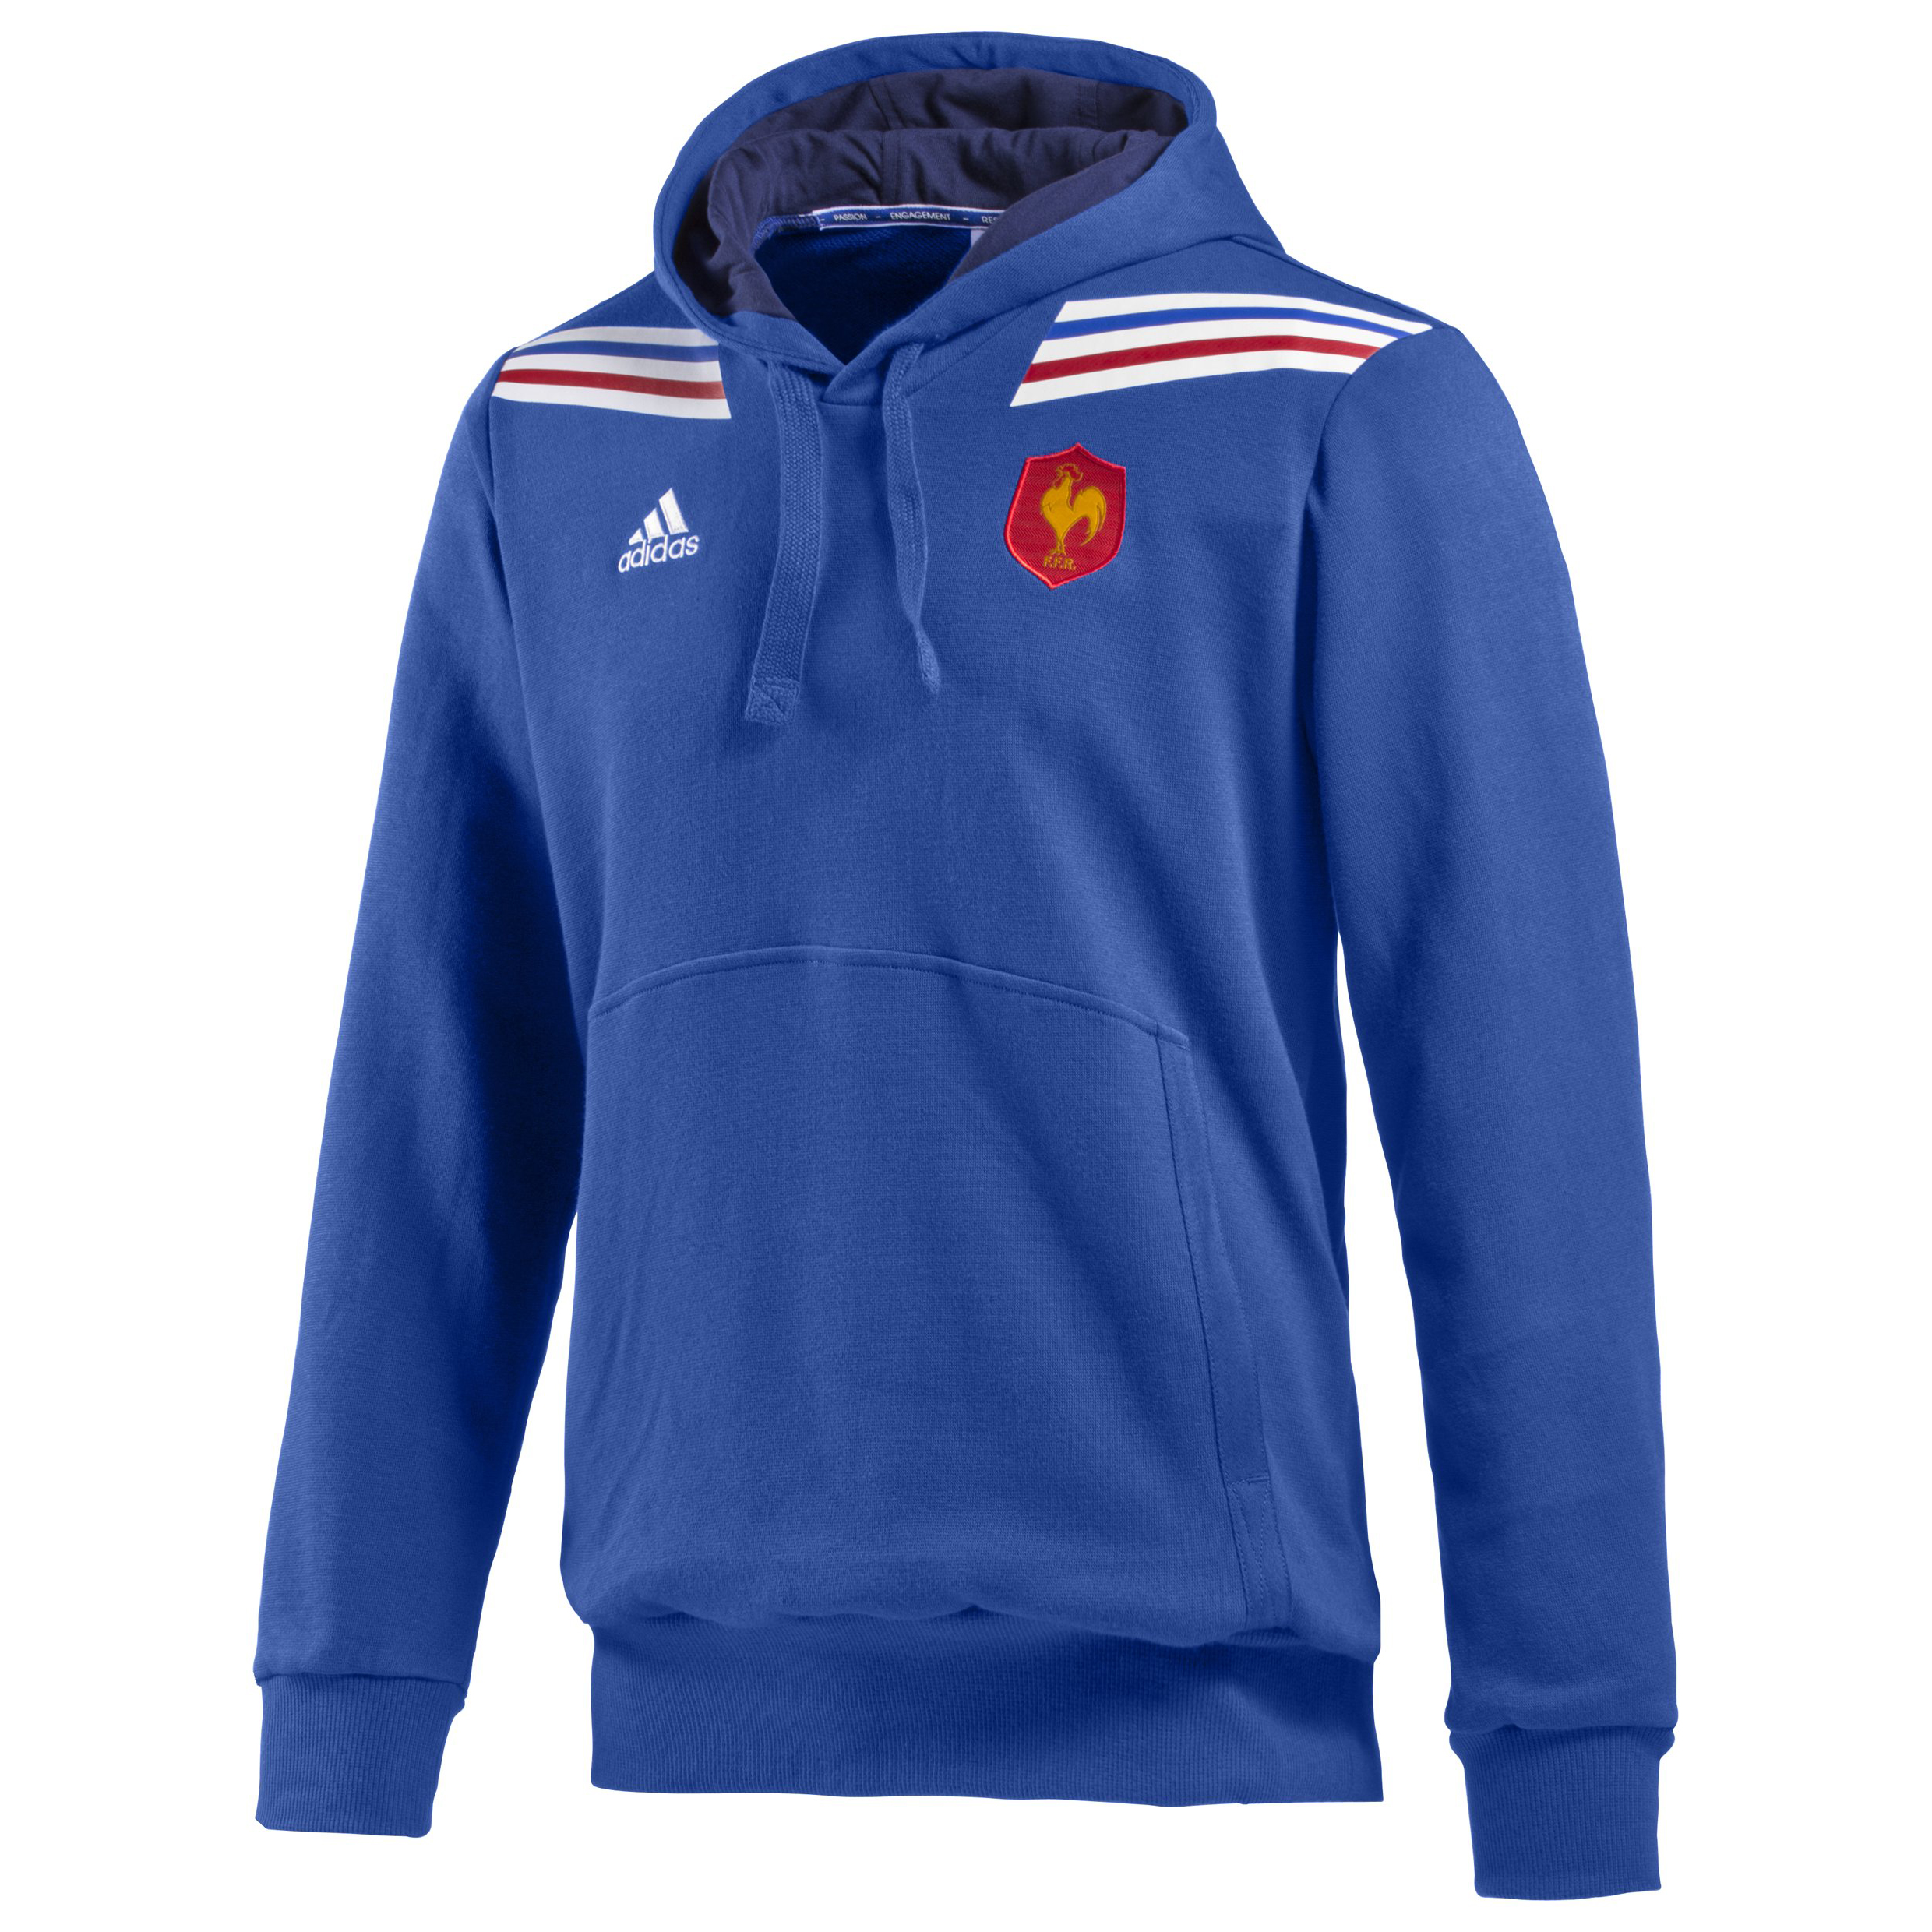 France Rugby Hooded Sweatshirt - True Blue